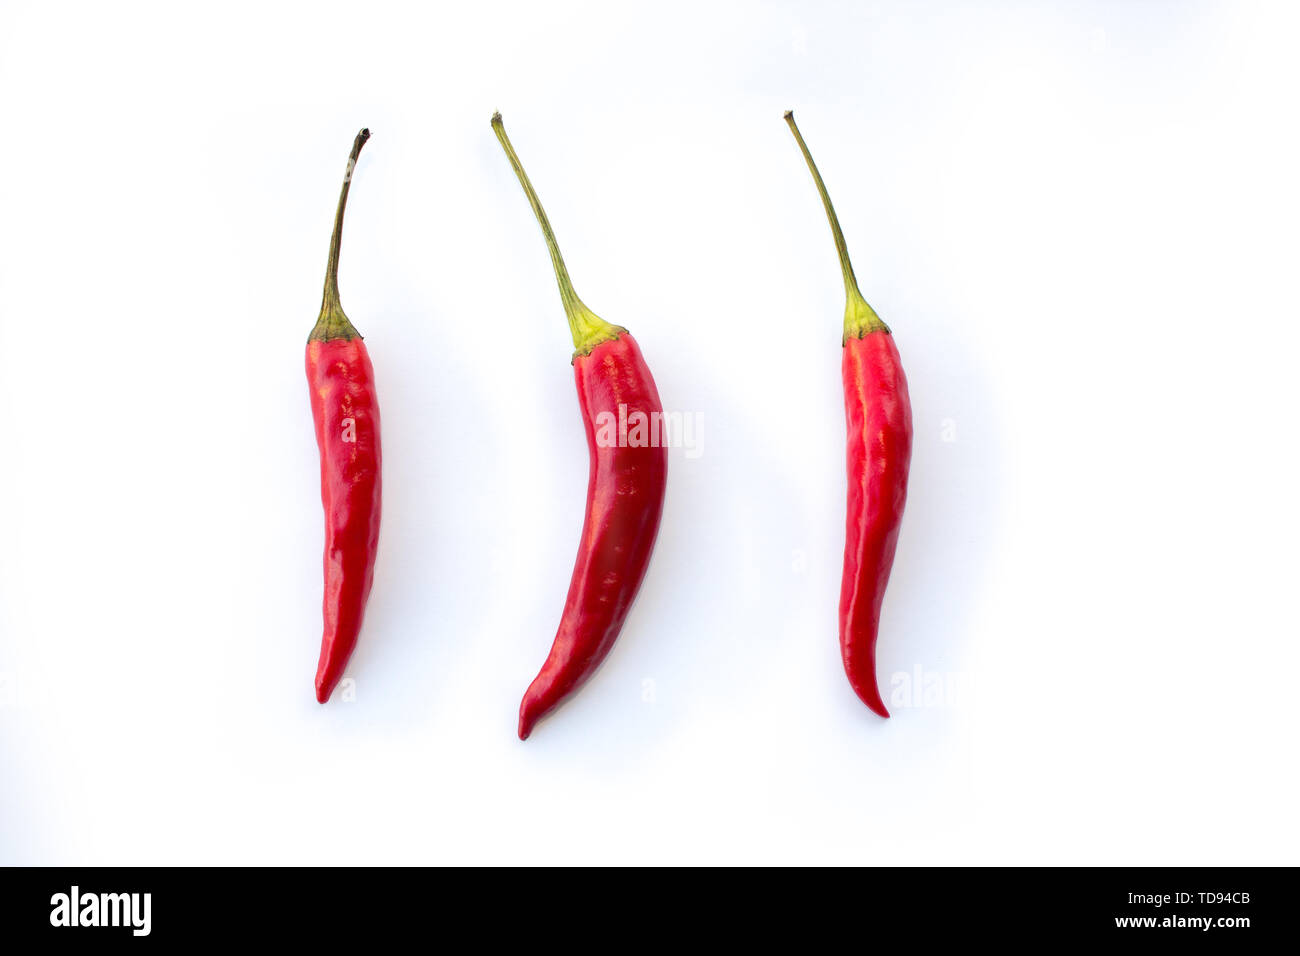 three red chilies - Stock Image